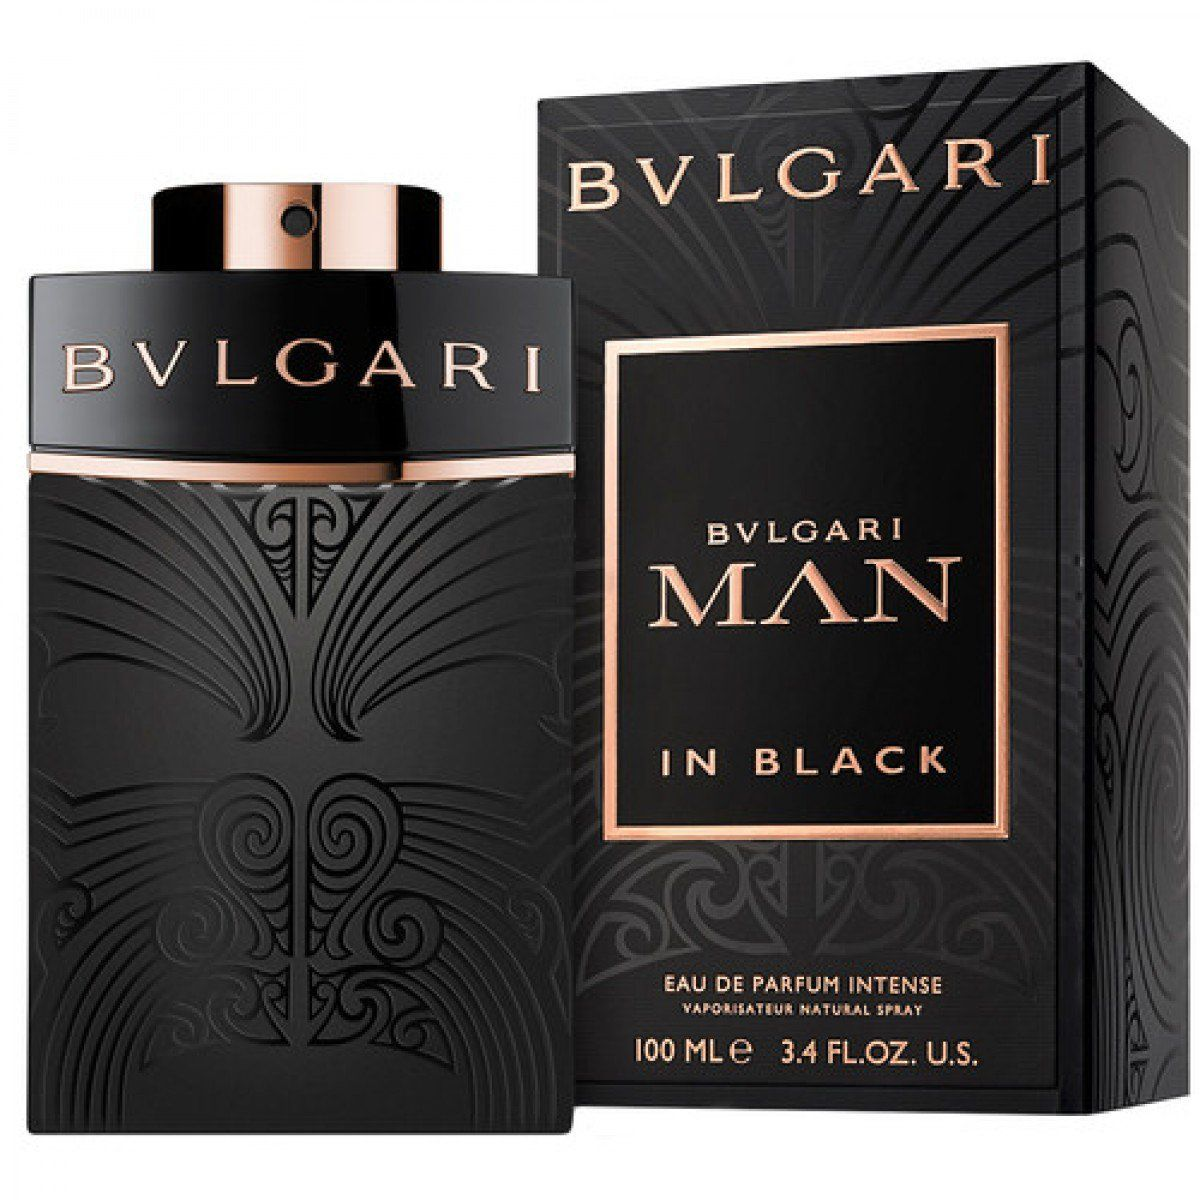 картинка Bvlgari Man In Black Eau De Parfum Intense от магазина Авуар